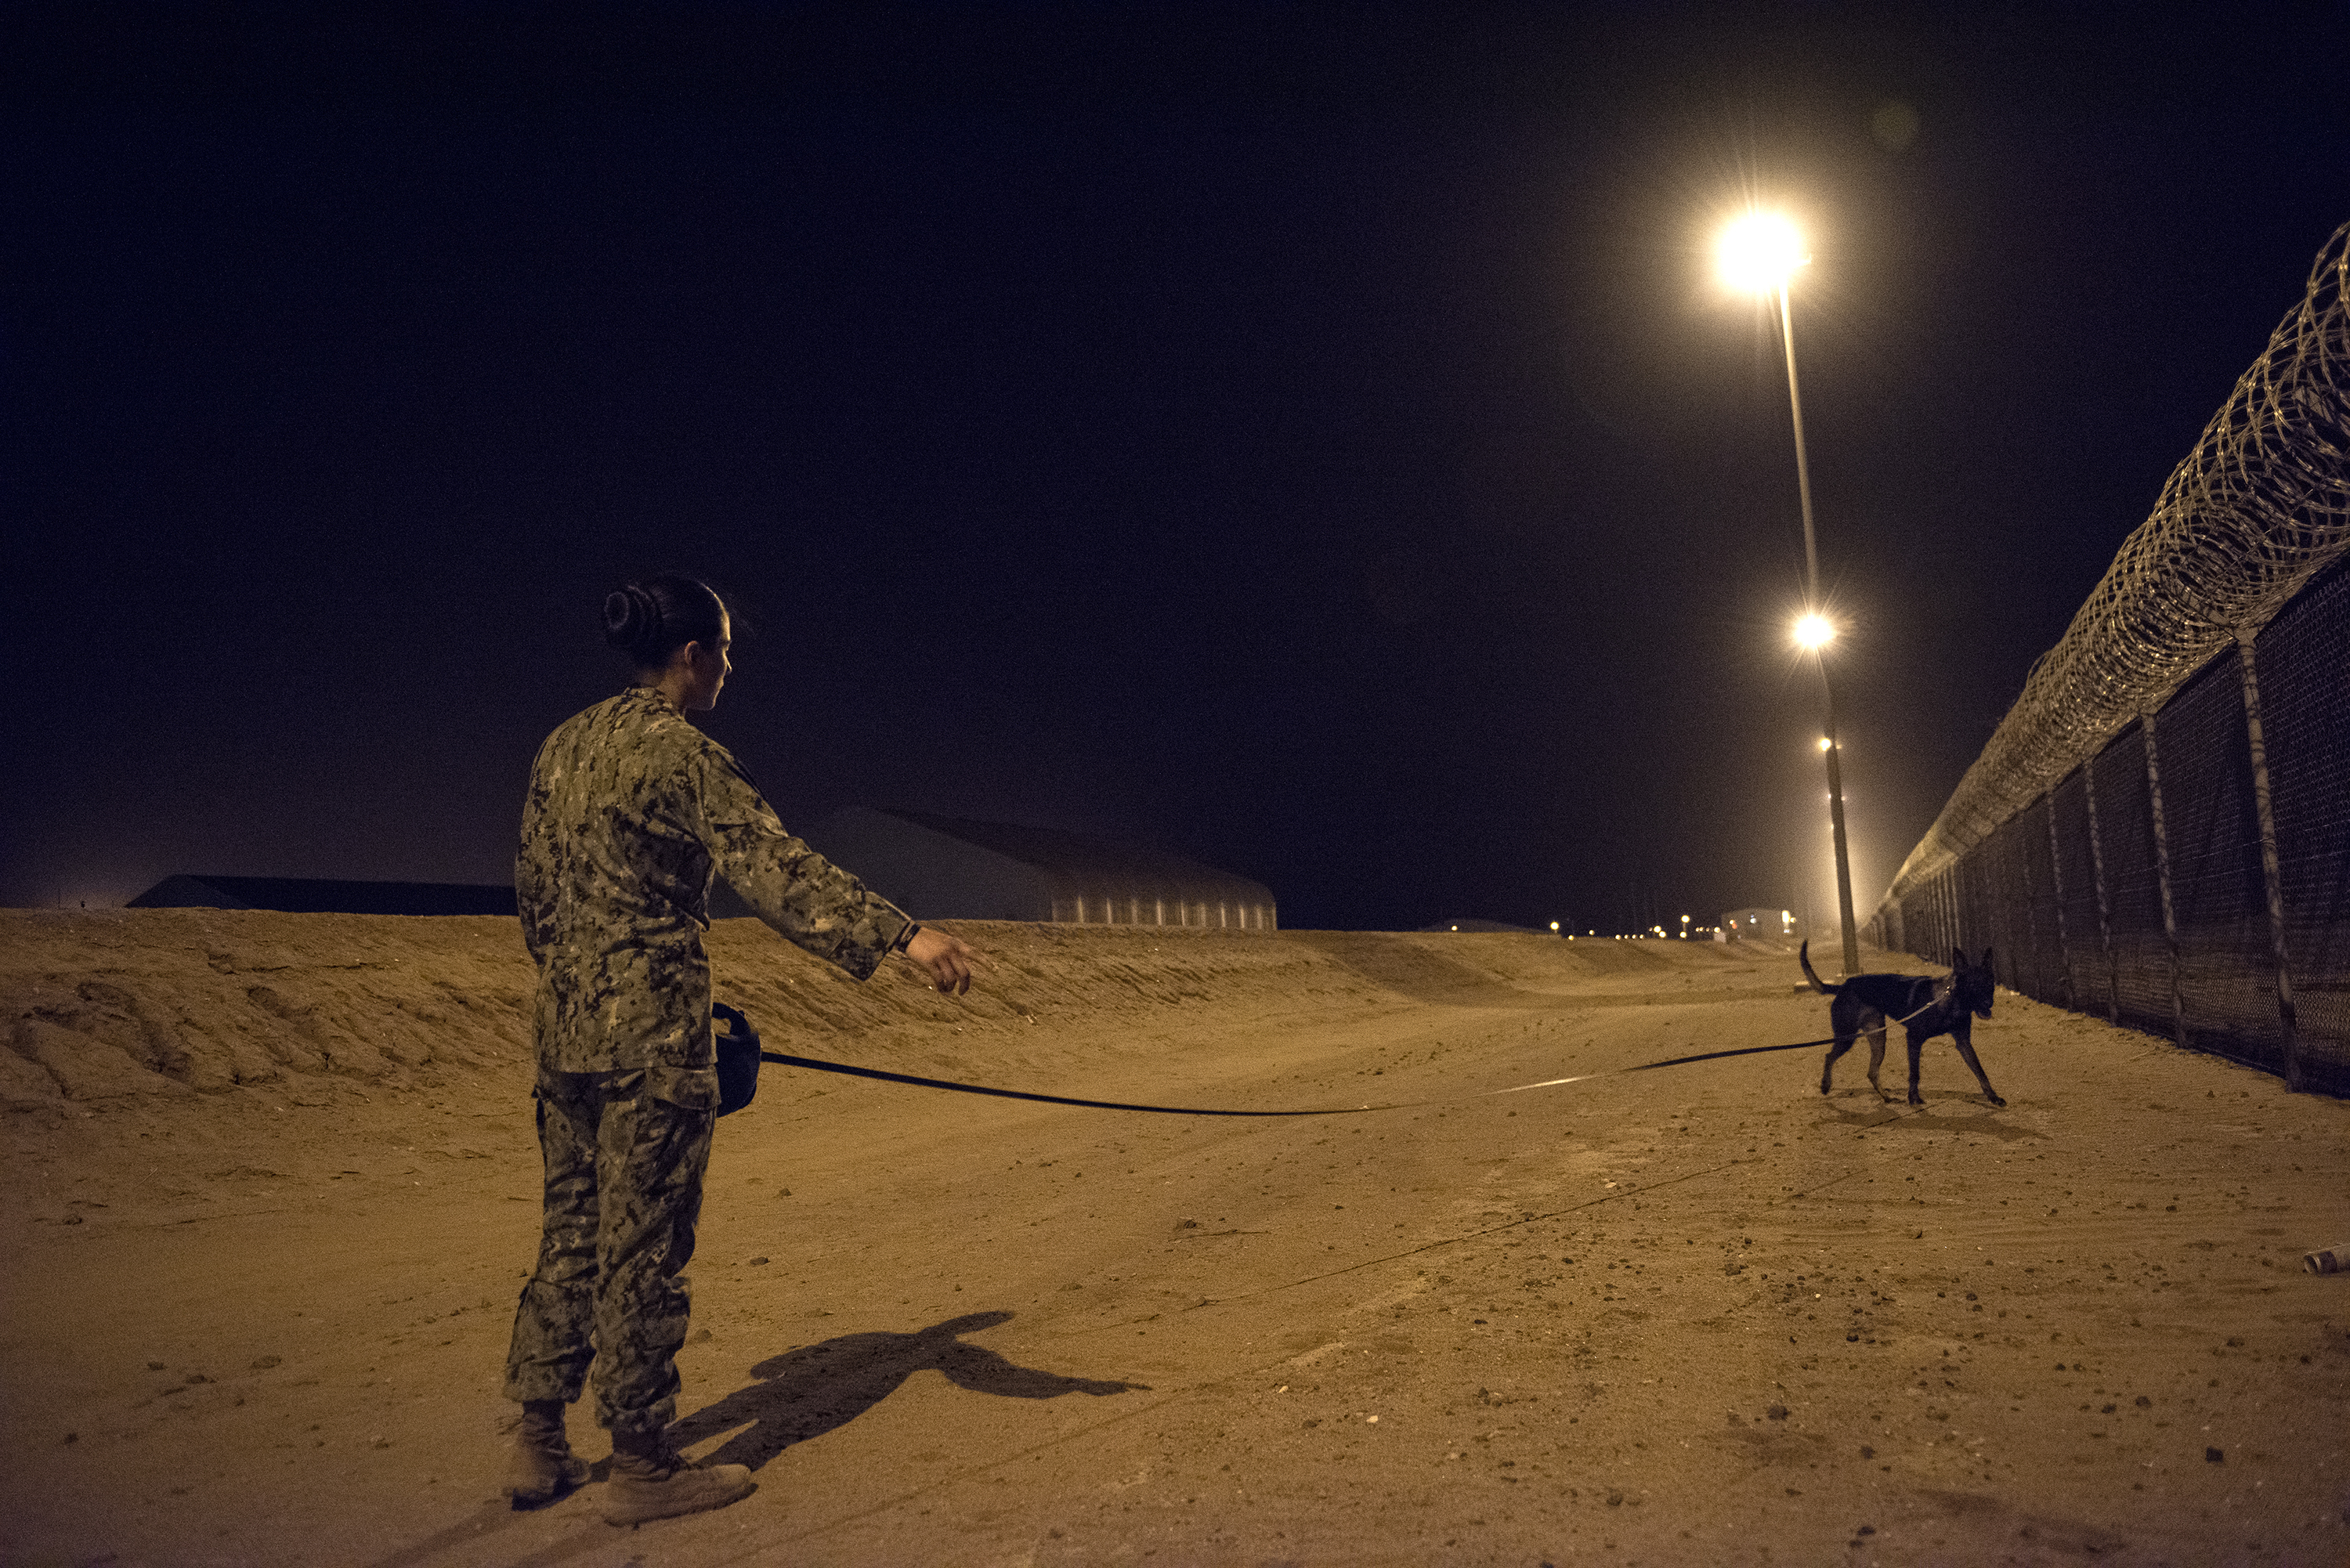 U.S. Navy Master-at-Arms 1st Class Kristina Vargas, a military working dog (MWD) handler gives a command to MWD Pponder while conducting proficiency training on Camp Lemonnier, Djibouti, July 31, 2018. Military Working Dogs can be used to perform searches, subdue suspects, and detect explosives and narcotics. (U.S. Air National Guard photo by Master Sgt. Sarah Mattison)